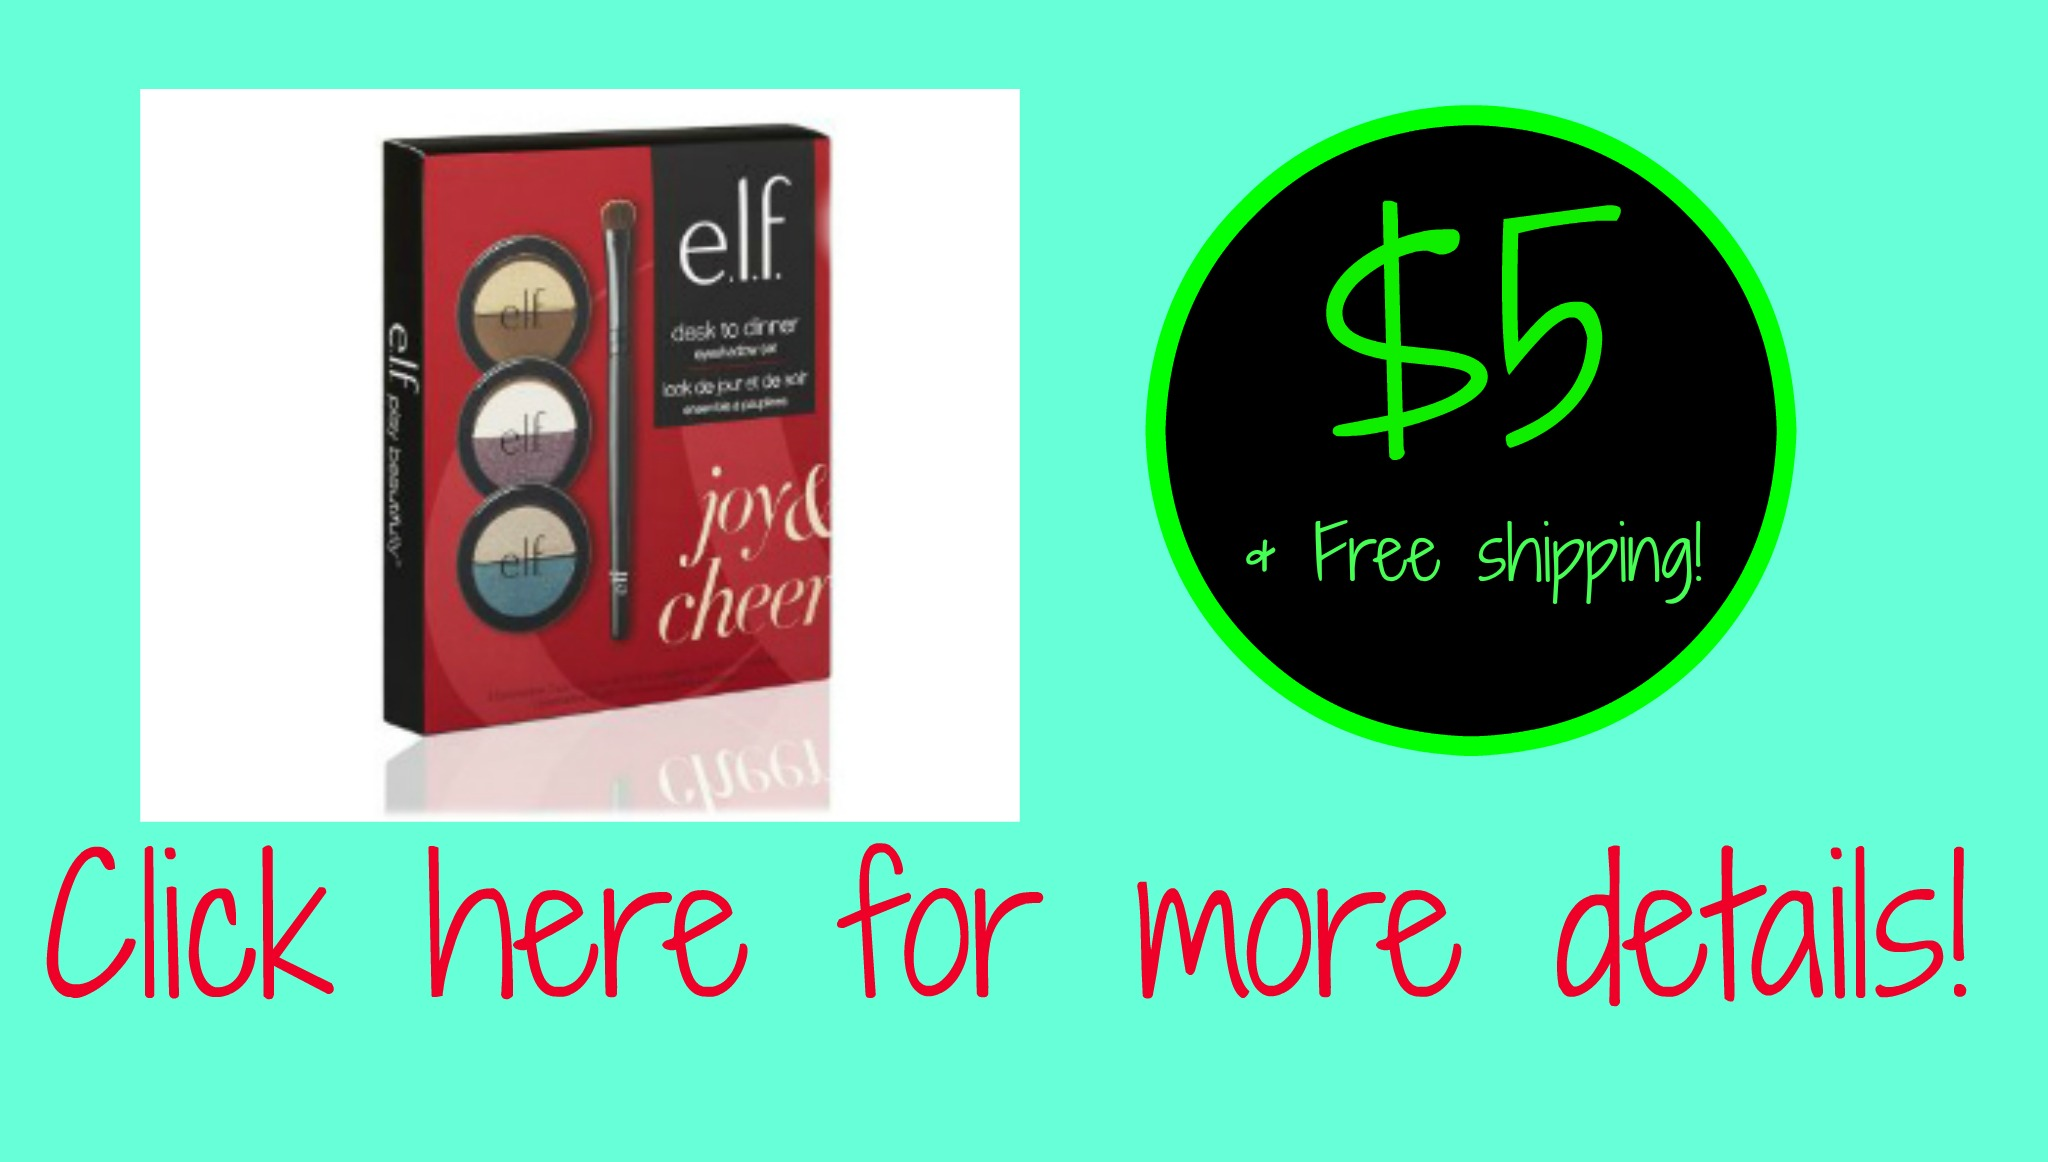 Elf Cosmetics kits $5 with Free Shipping!!!